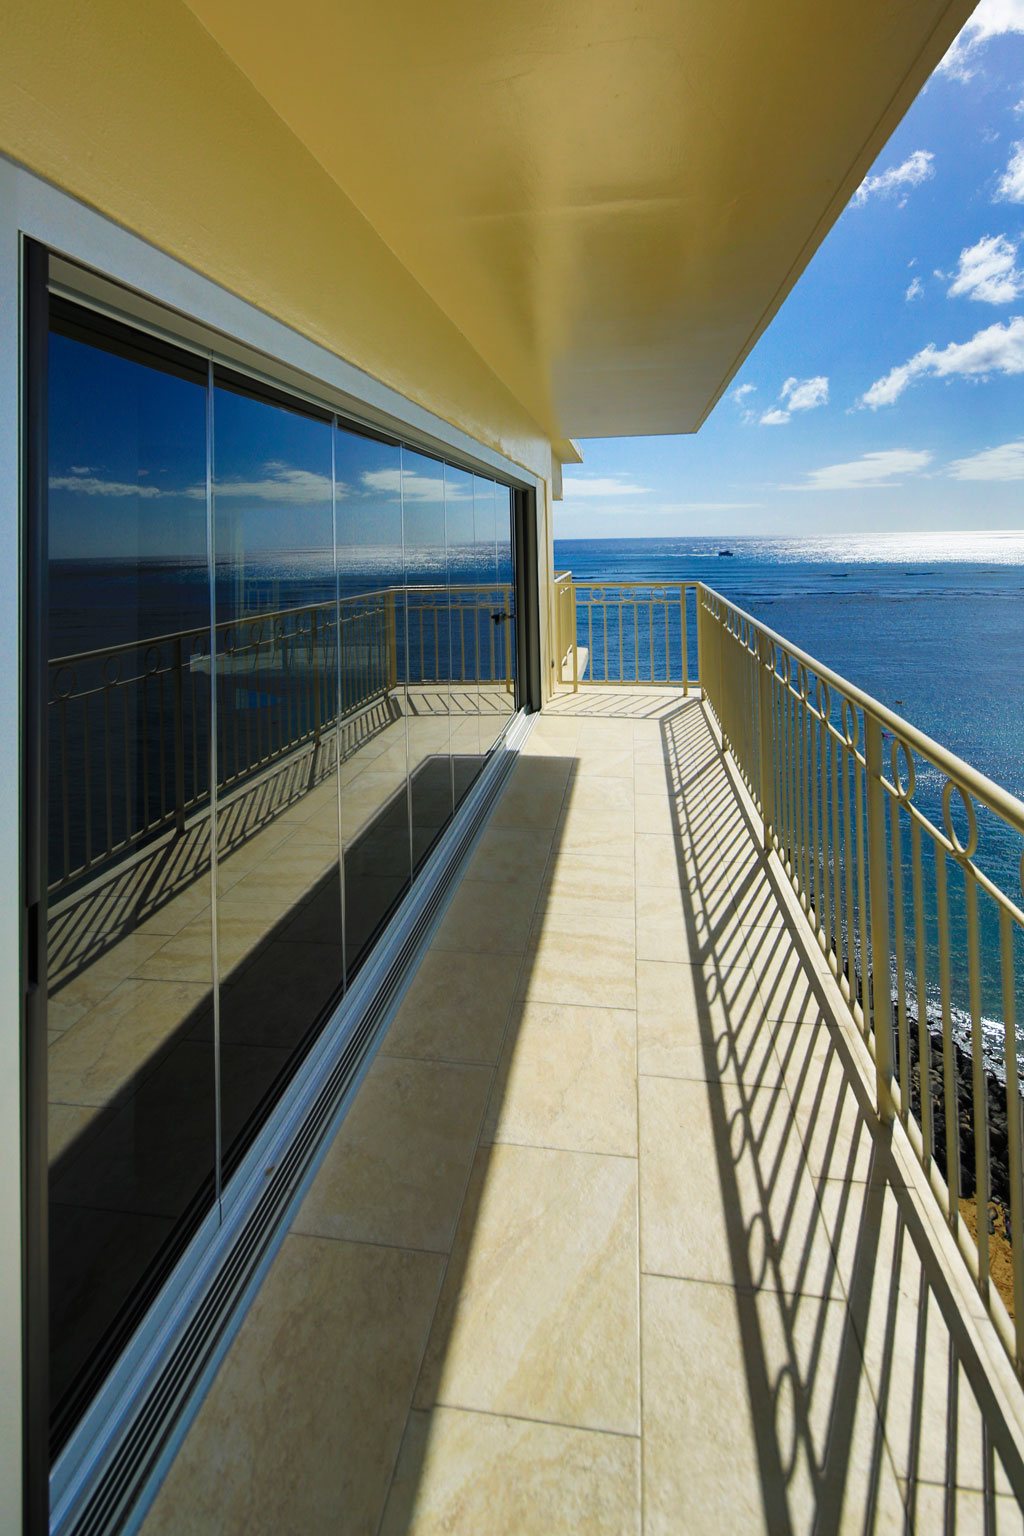 Custom grey glass 22 foot ocean front frameless sliding glass door withretractable Centor screens.